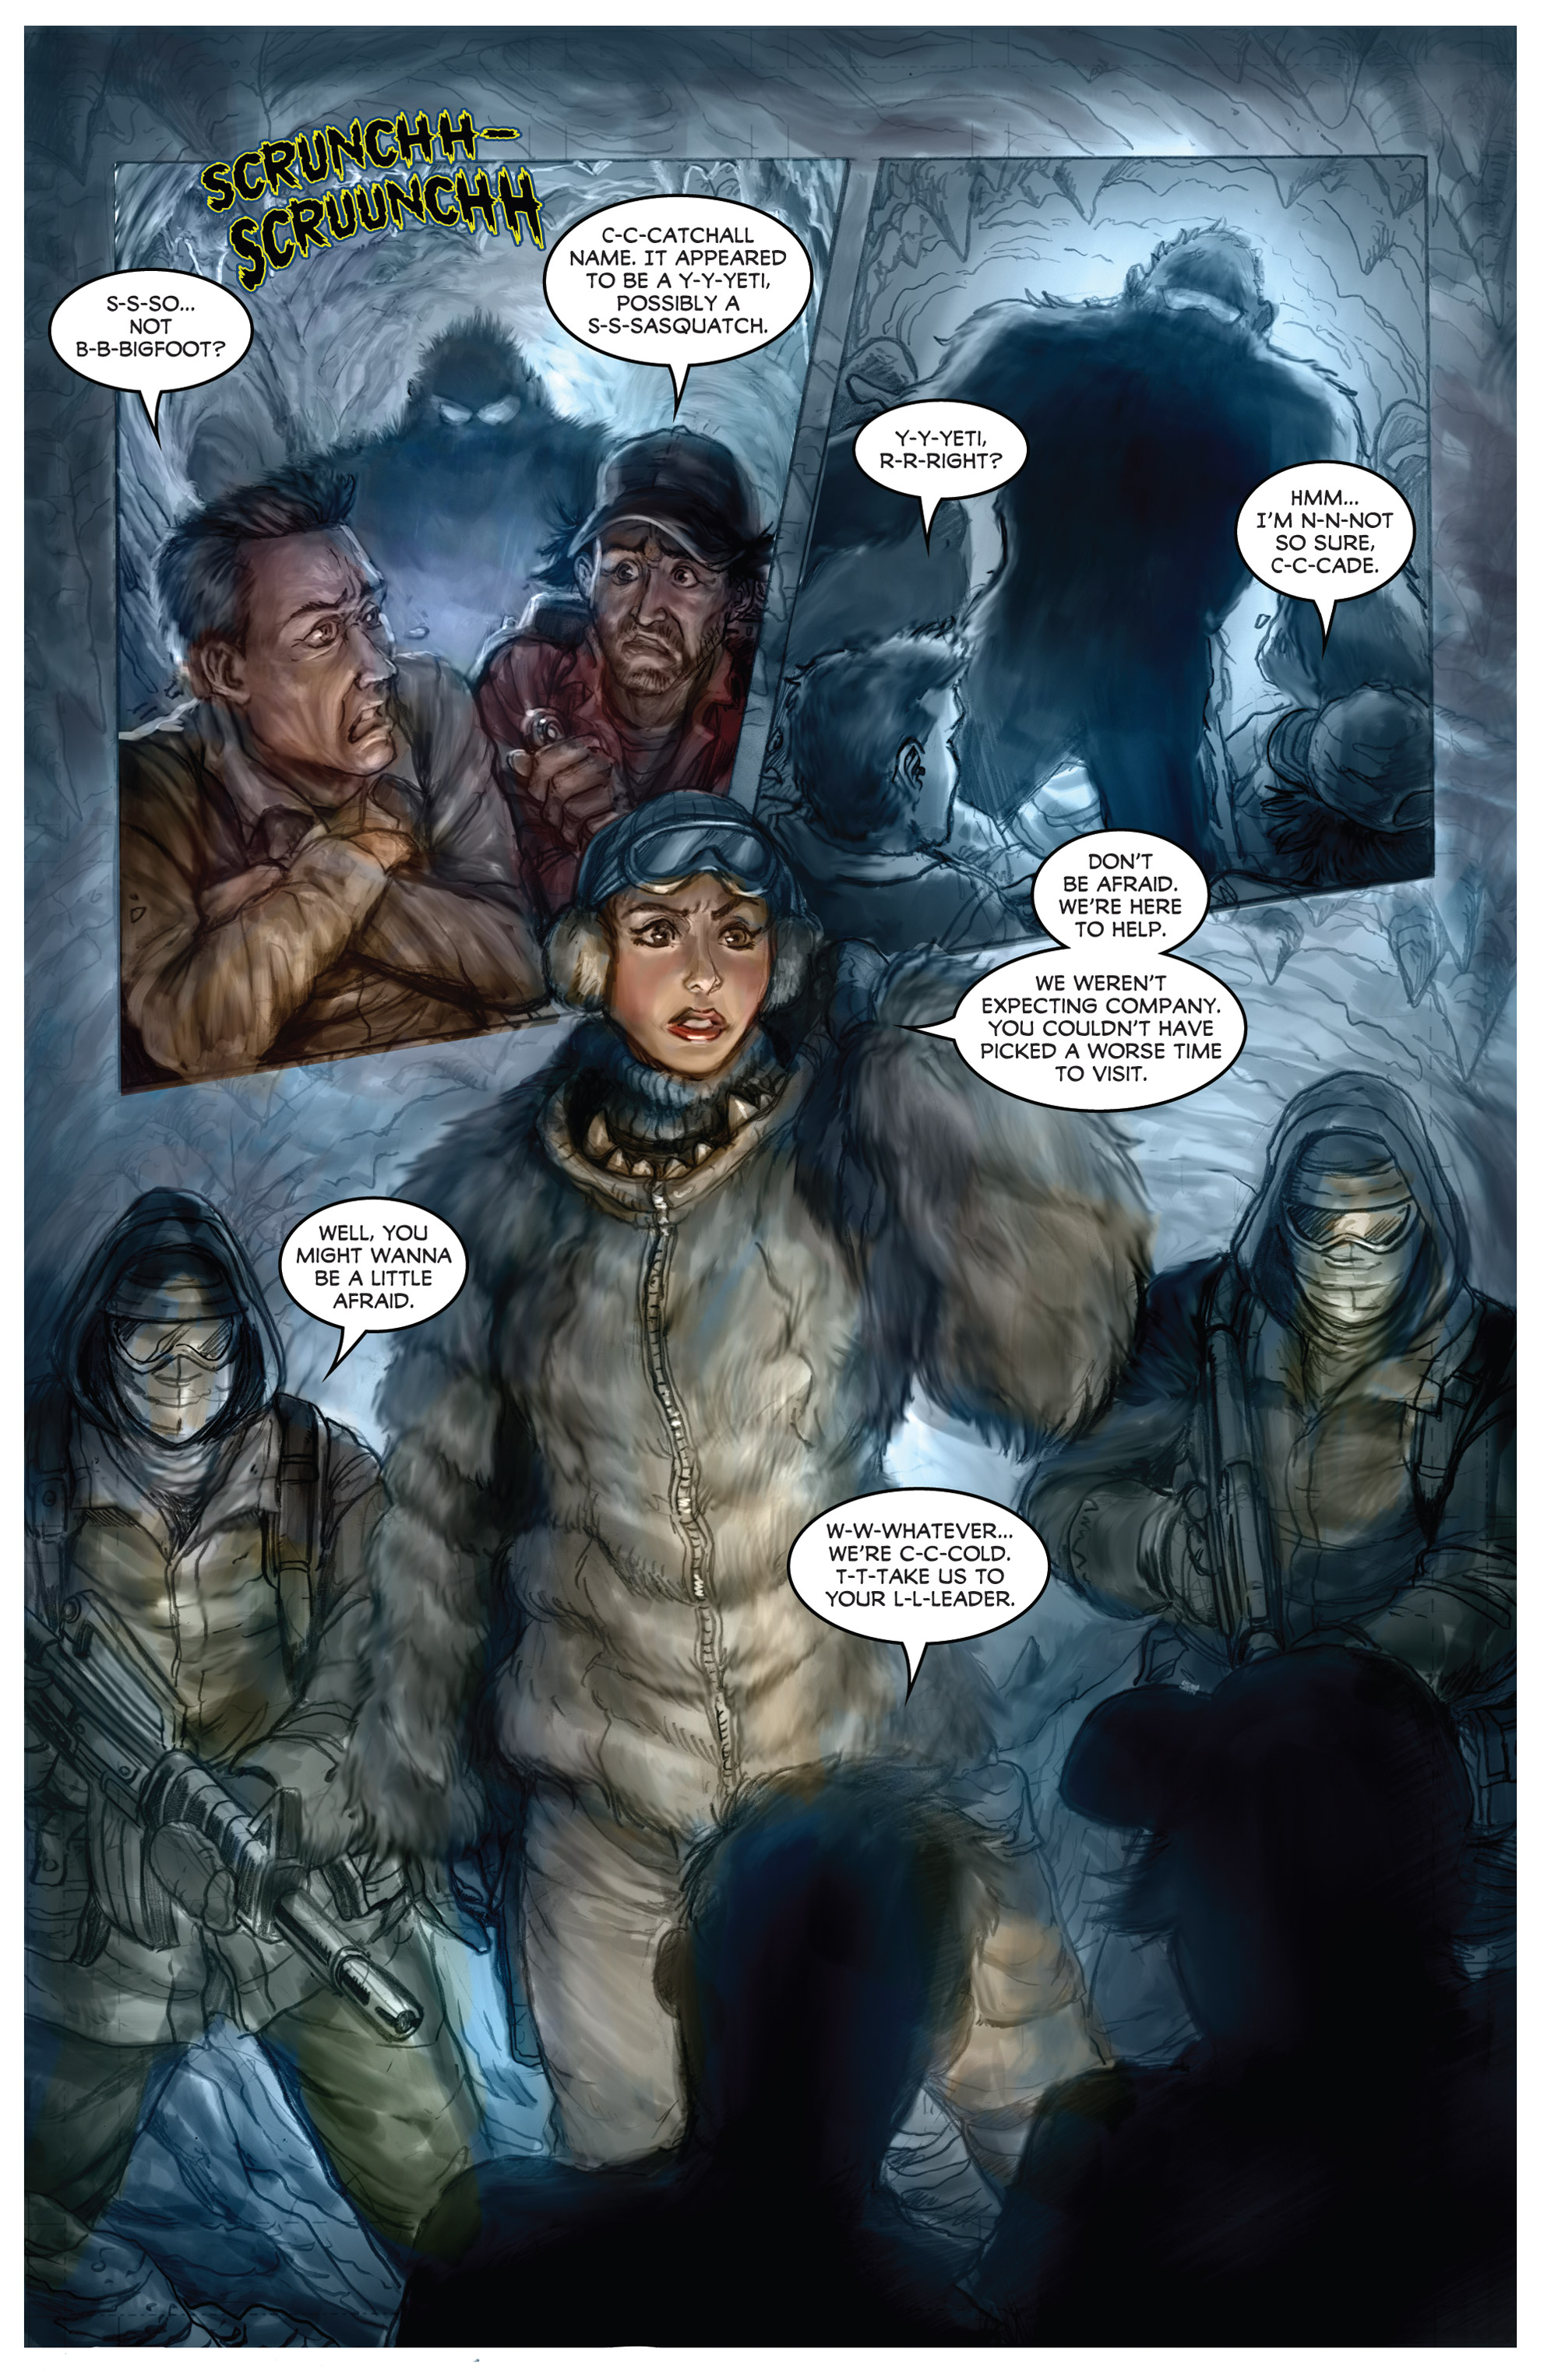 Read online American Mythology Dark: Werewolves vs Dinosaurs comic -  Issue #2 - 6